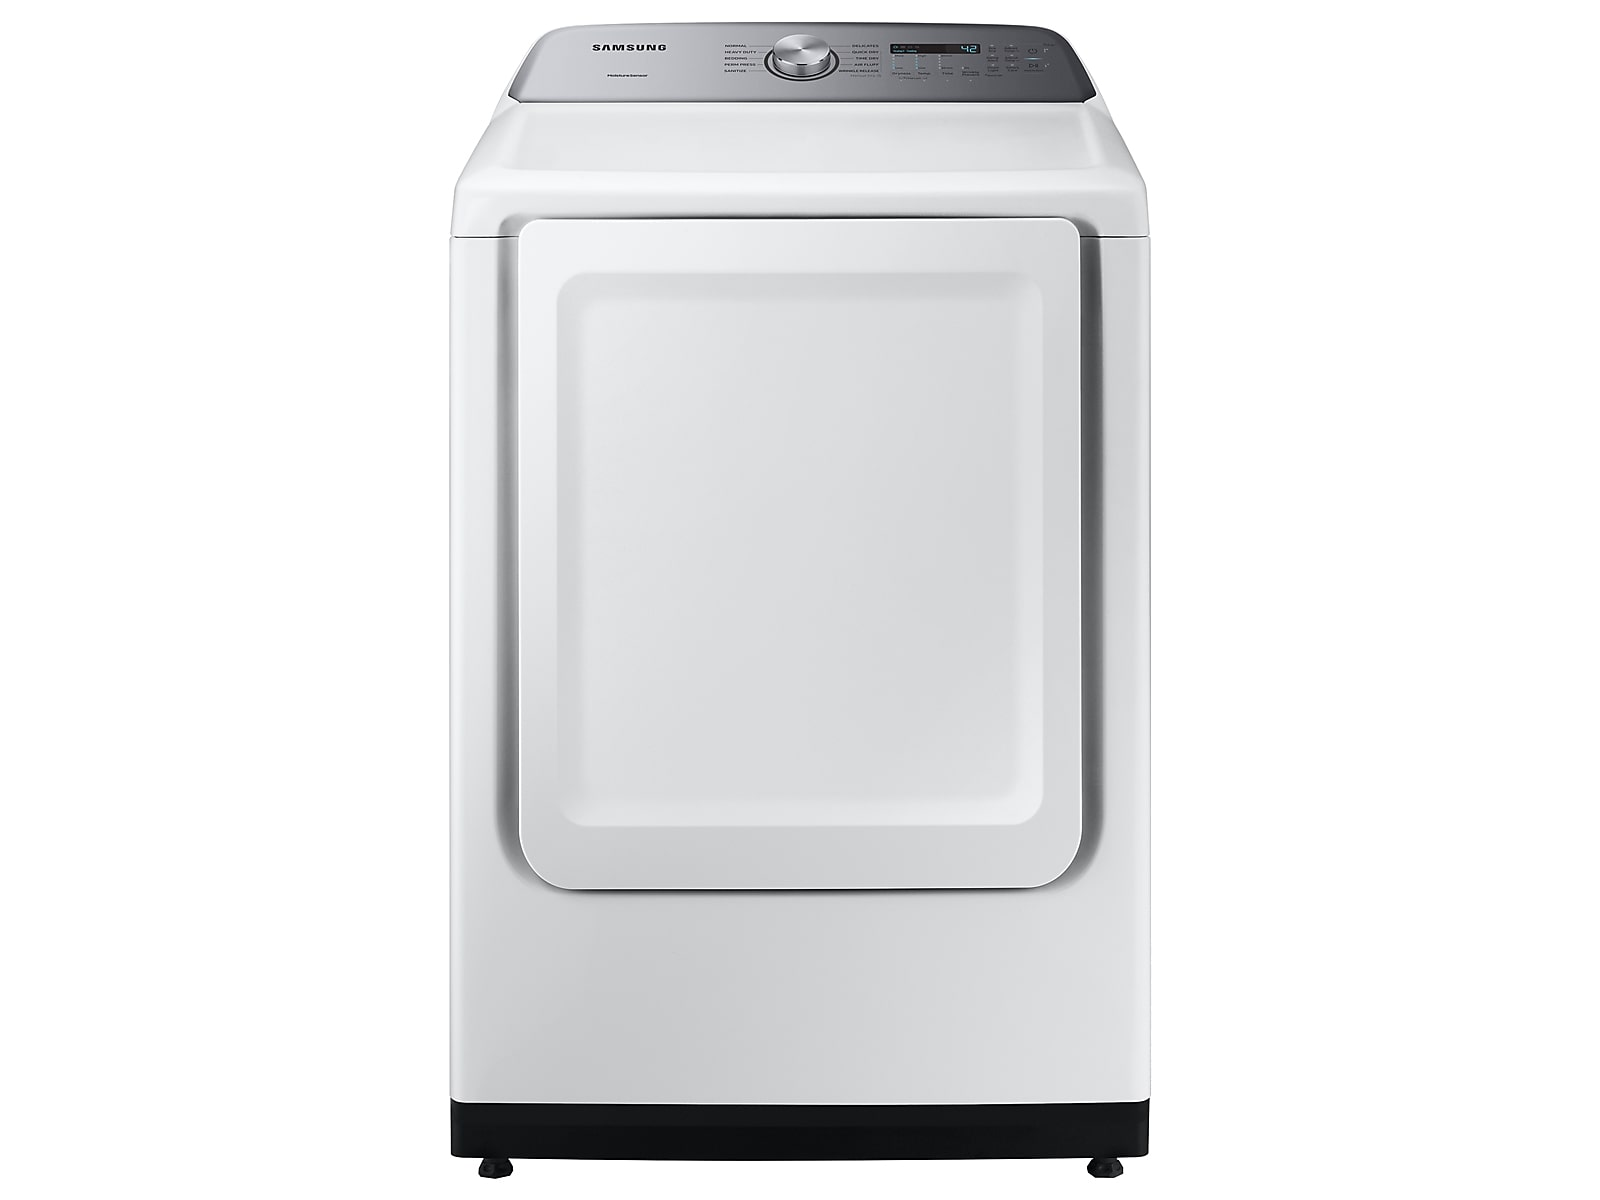 Samsung coupon: Samsung 7.4 cu. ft. Gas Dryer with Sensor Dry in White(DVG50R5200W/A3)